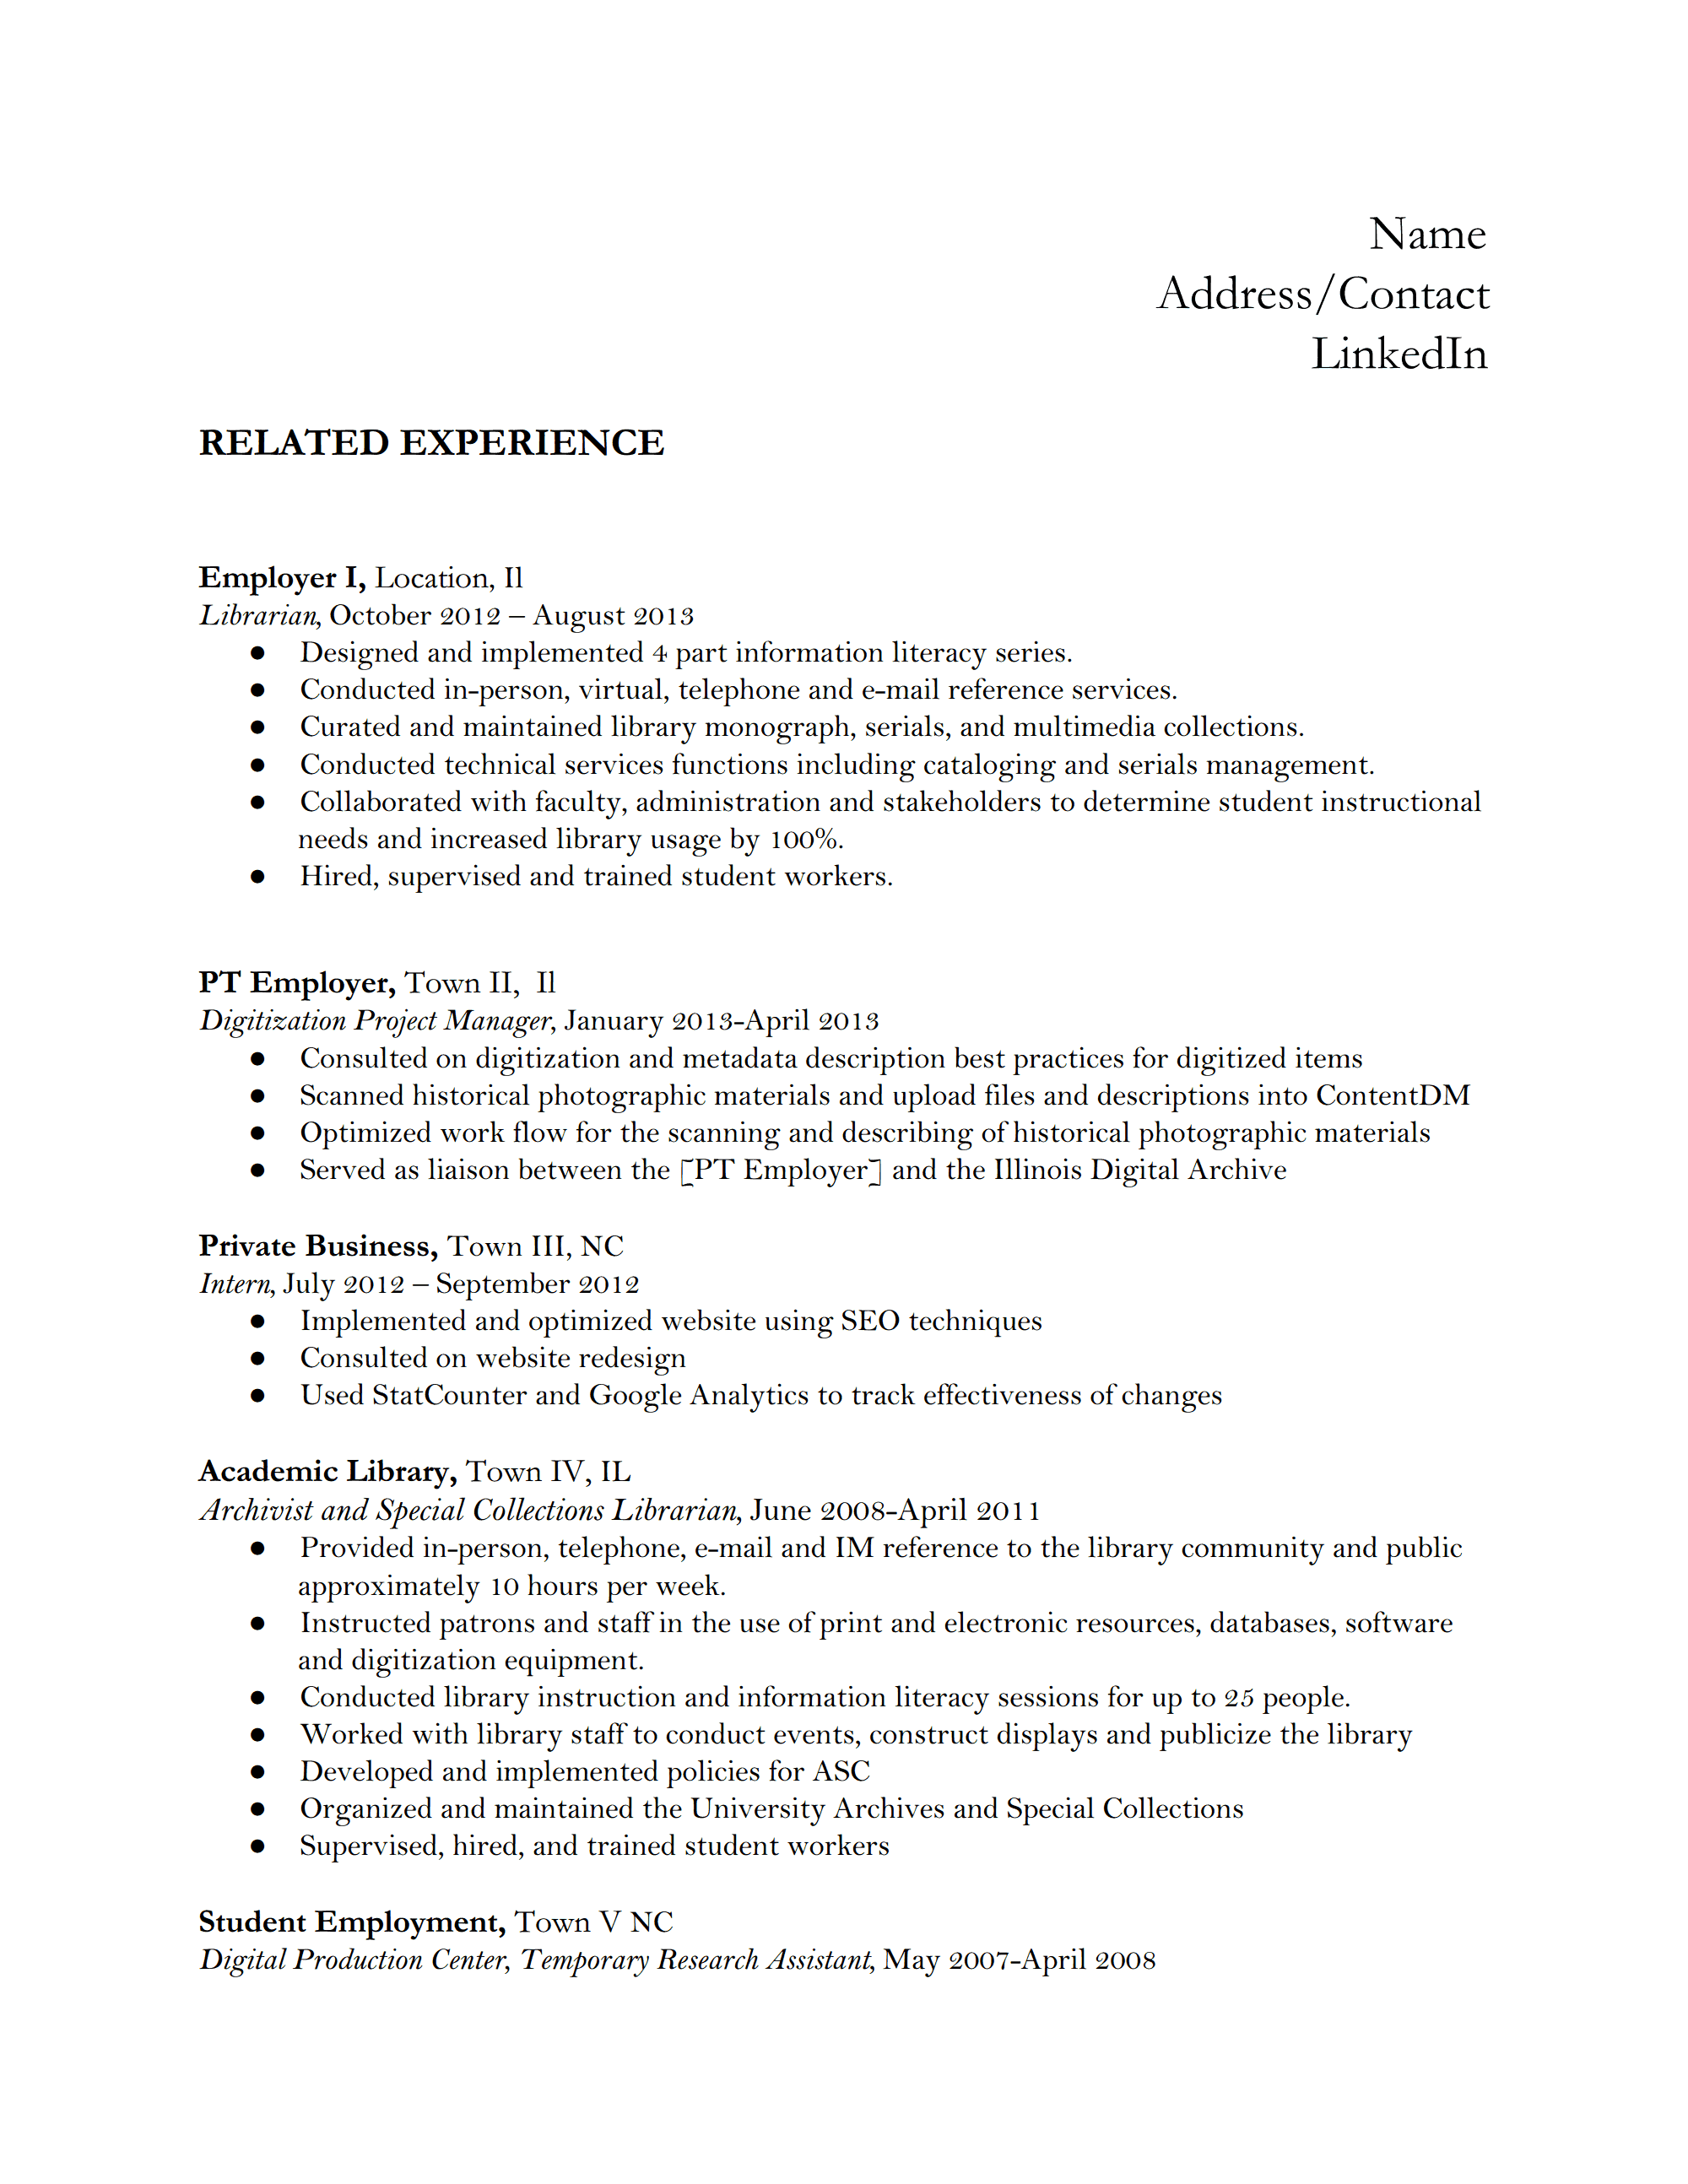 bookseller resume example  resume  ixiplay free resume samples